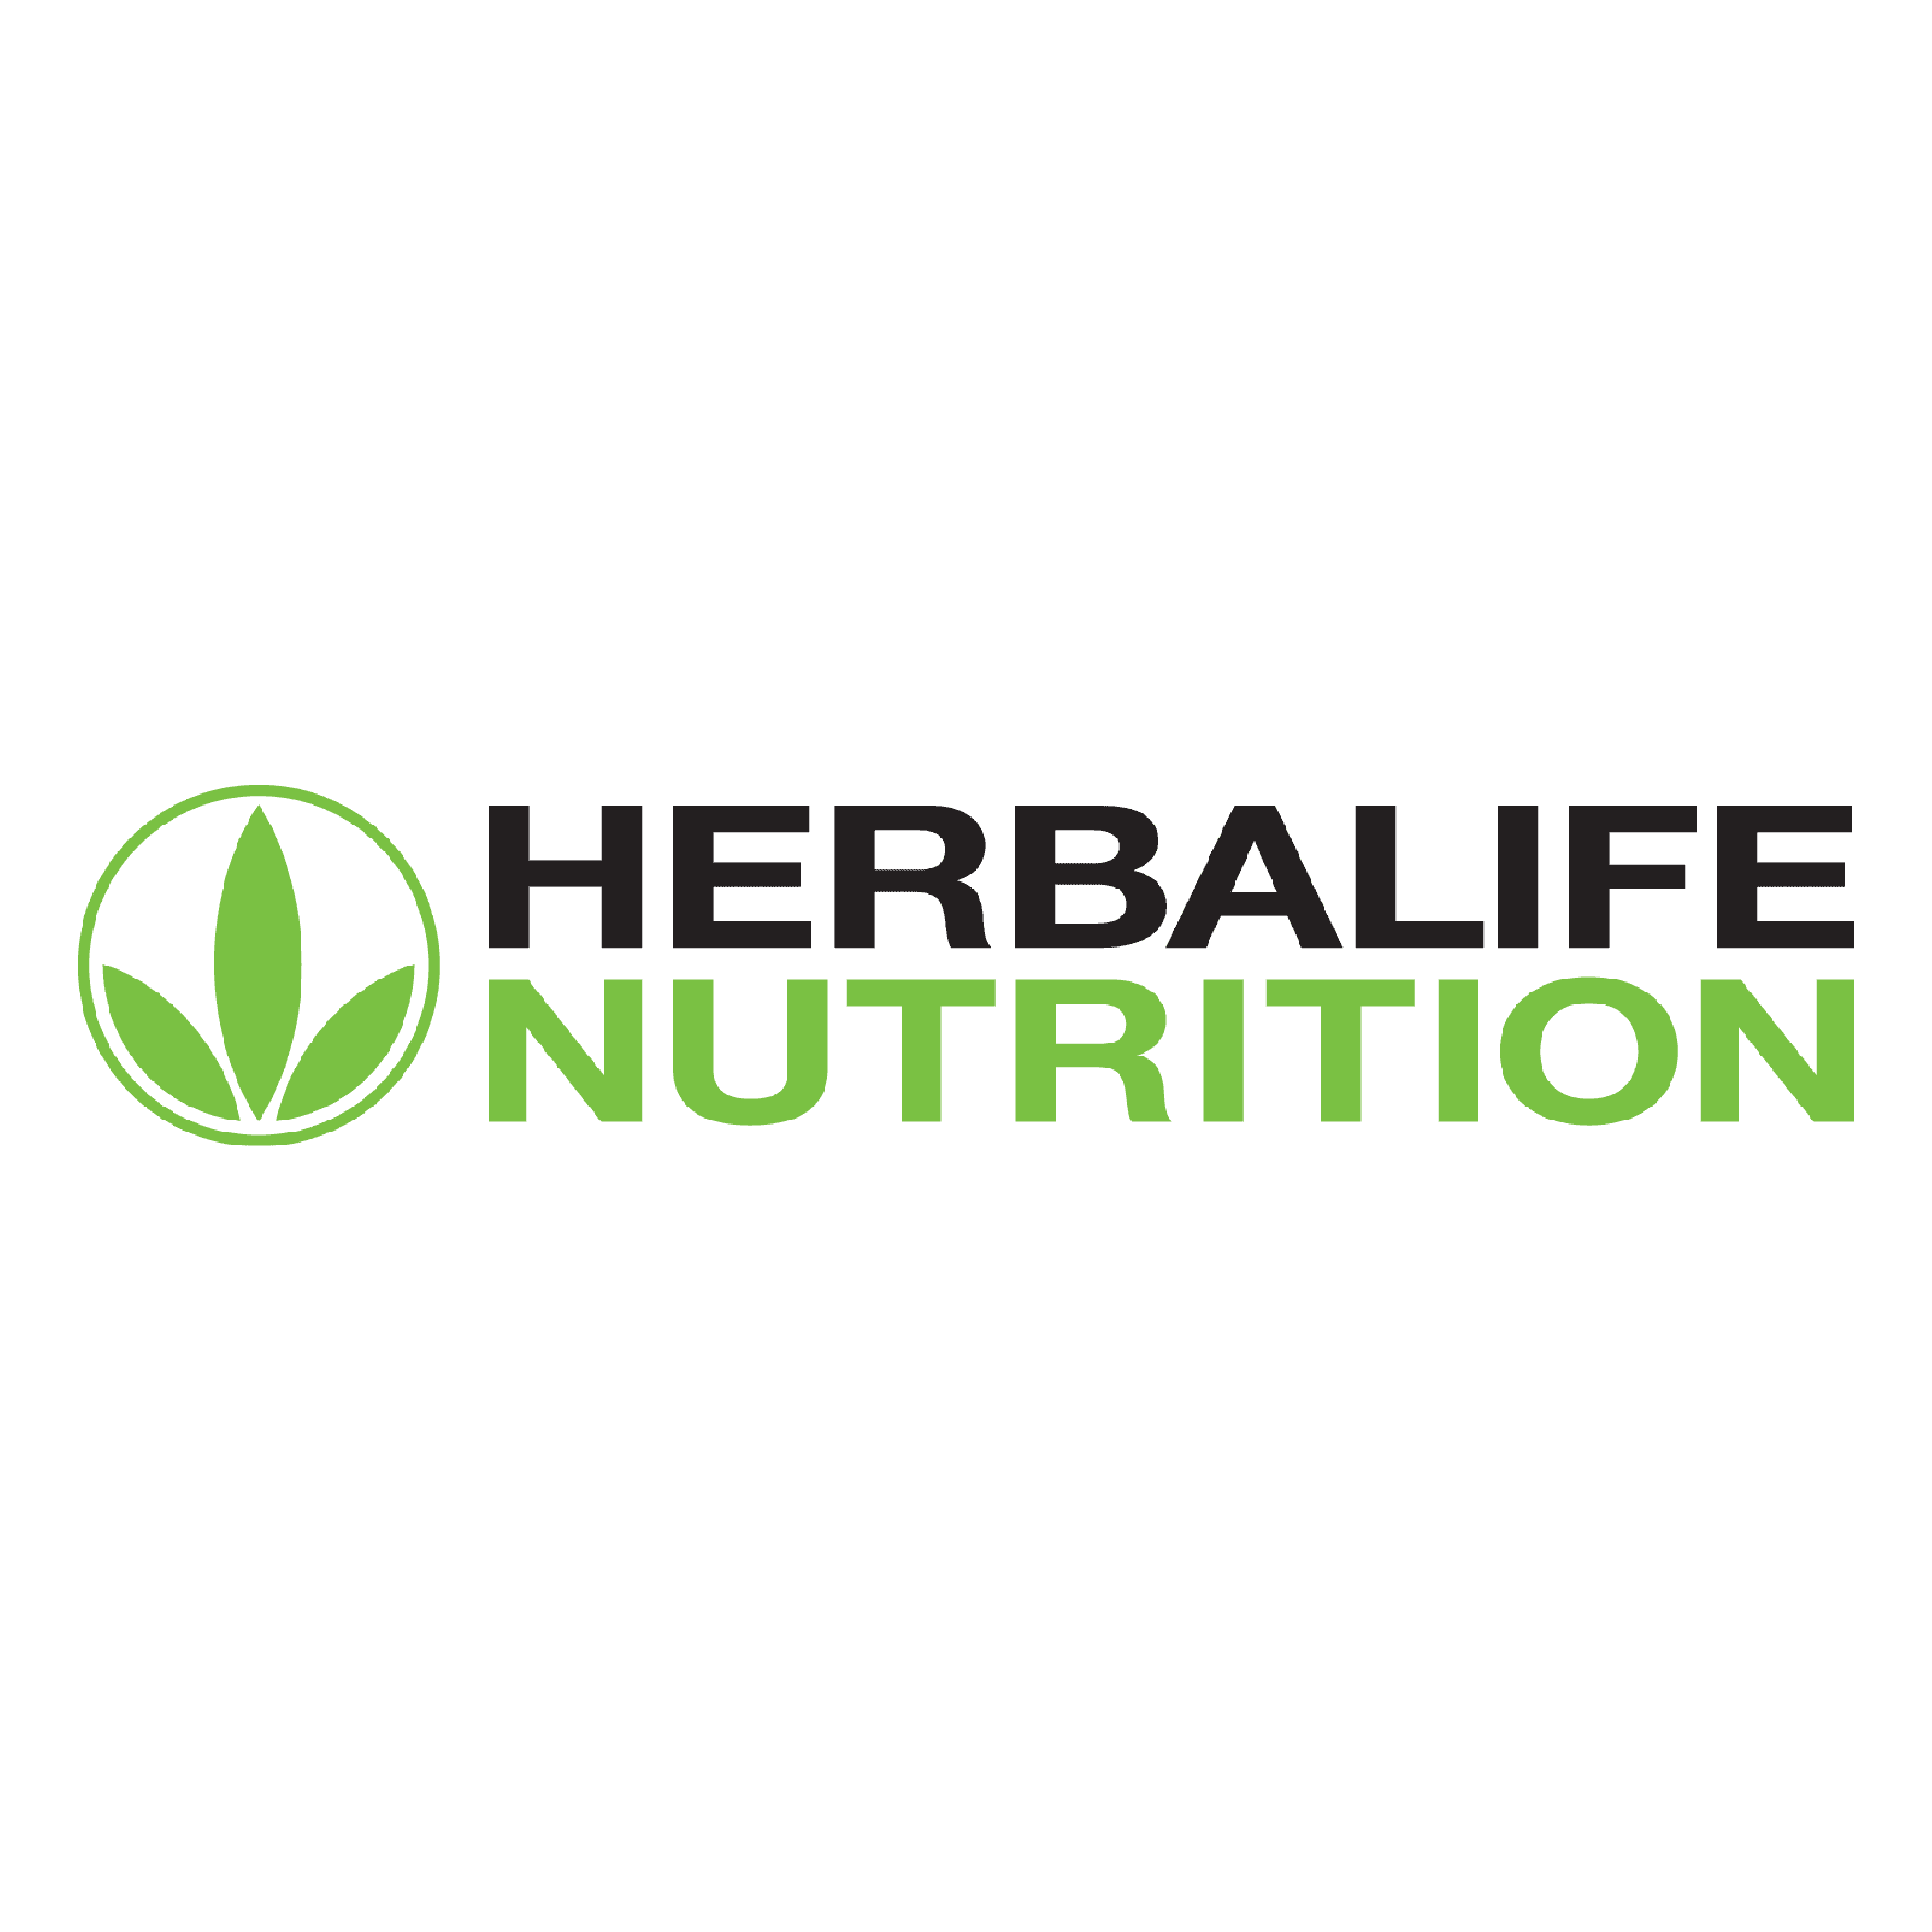 Herbalife Nutrition Is A Global Multi Level Marketing Corporation That Develops Markets And Sells Nutrition Supp In 2020 Nutrition Logo Herbalife Nutrition Herbalife